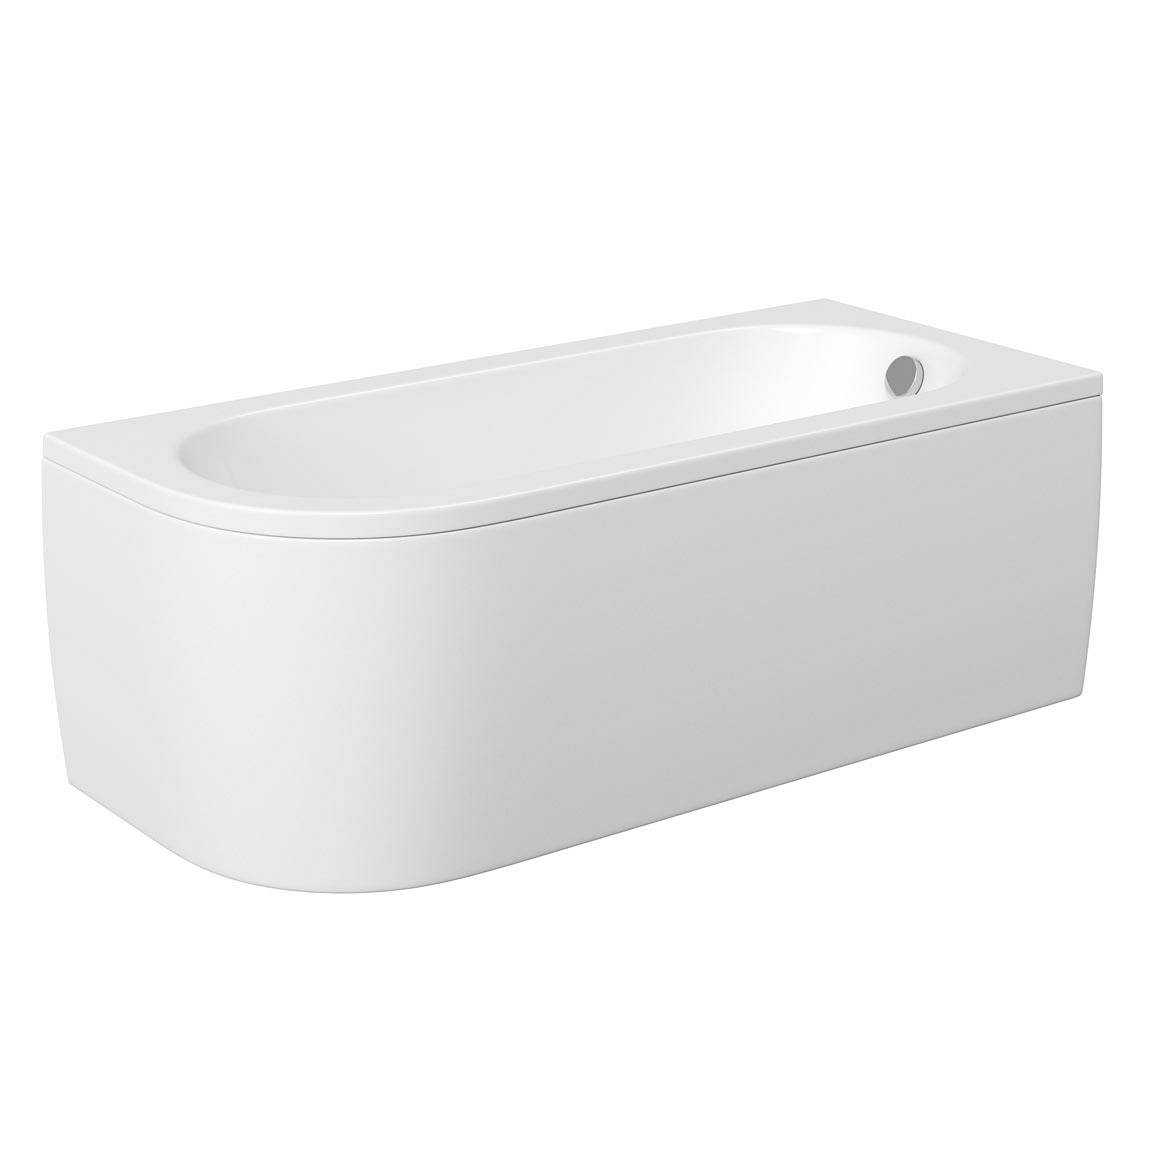 Image of Cayman D Shaped Single Ended Back To Wall Bath RH Special Offer